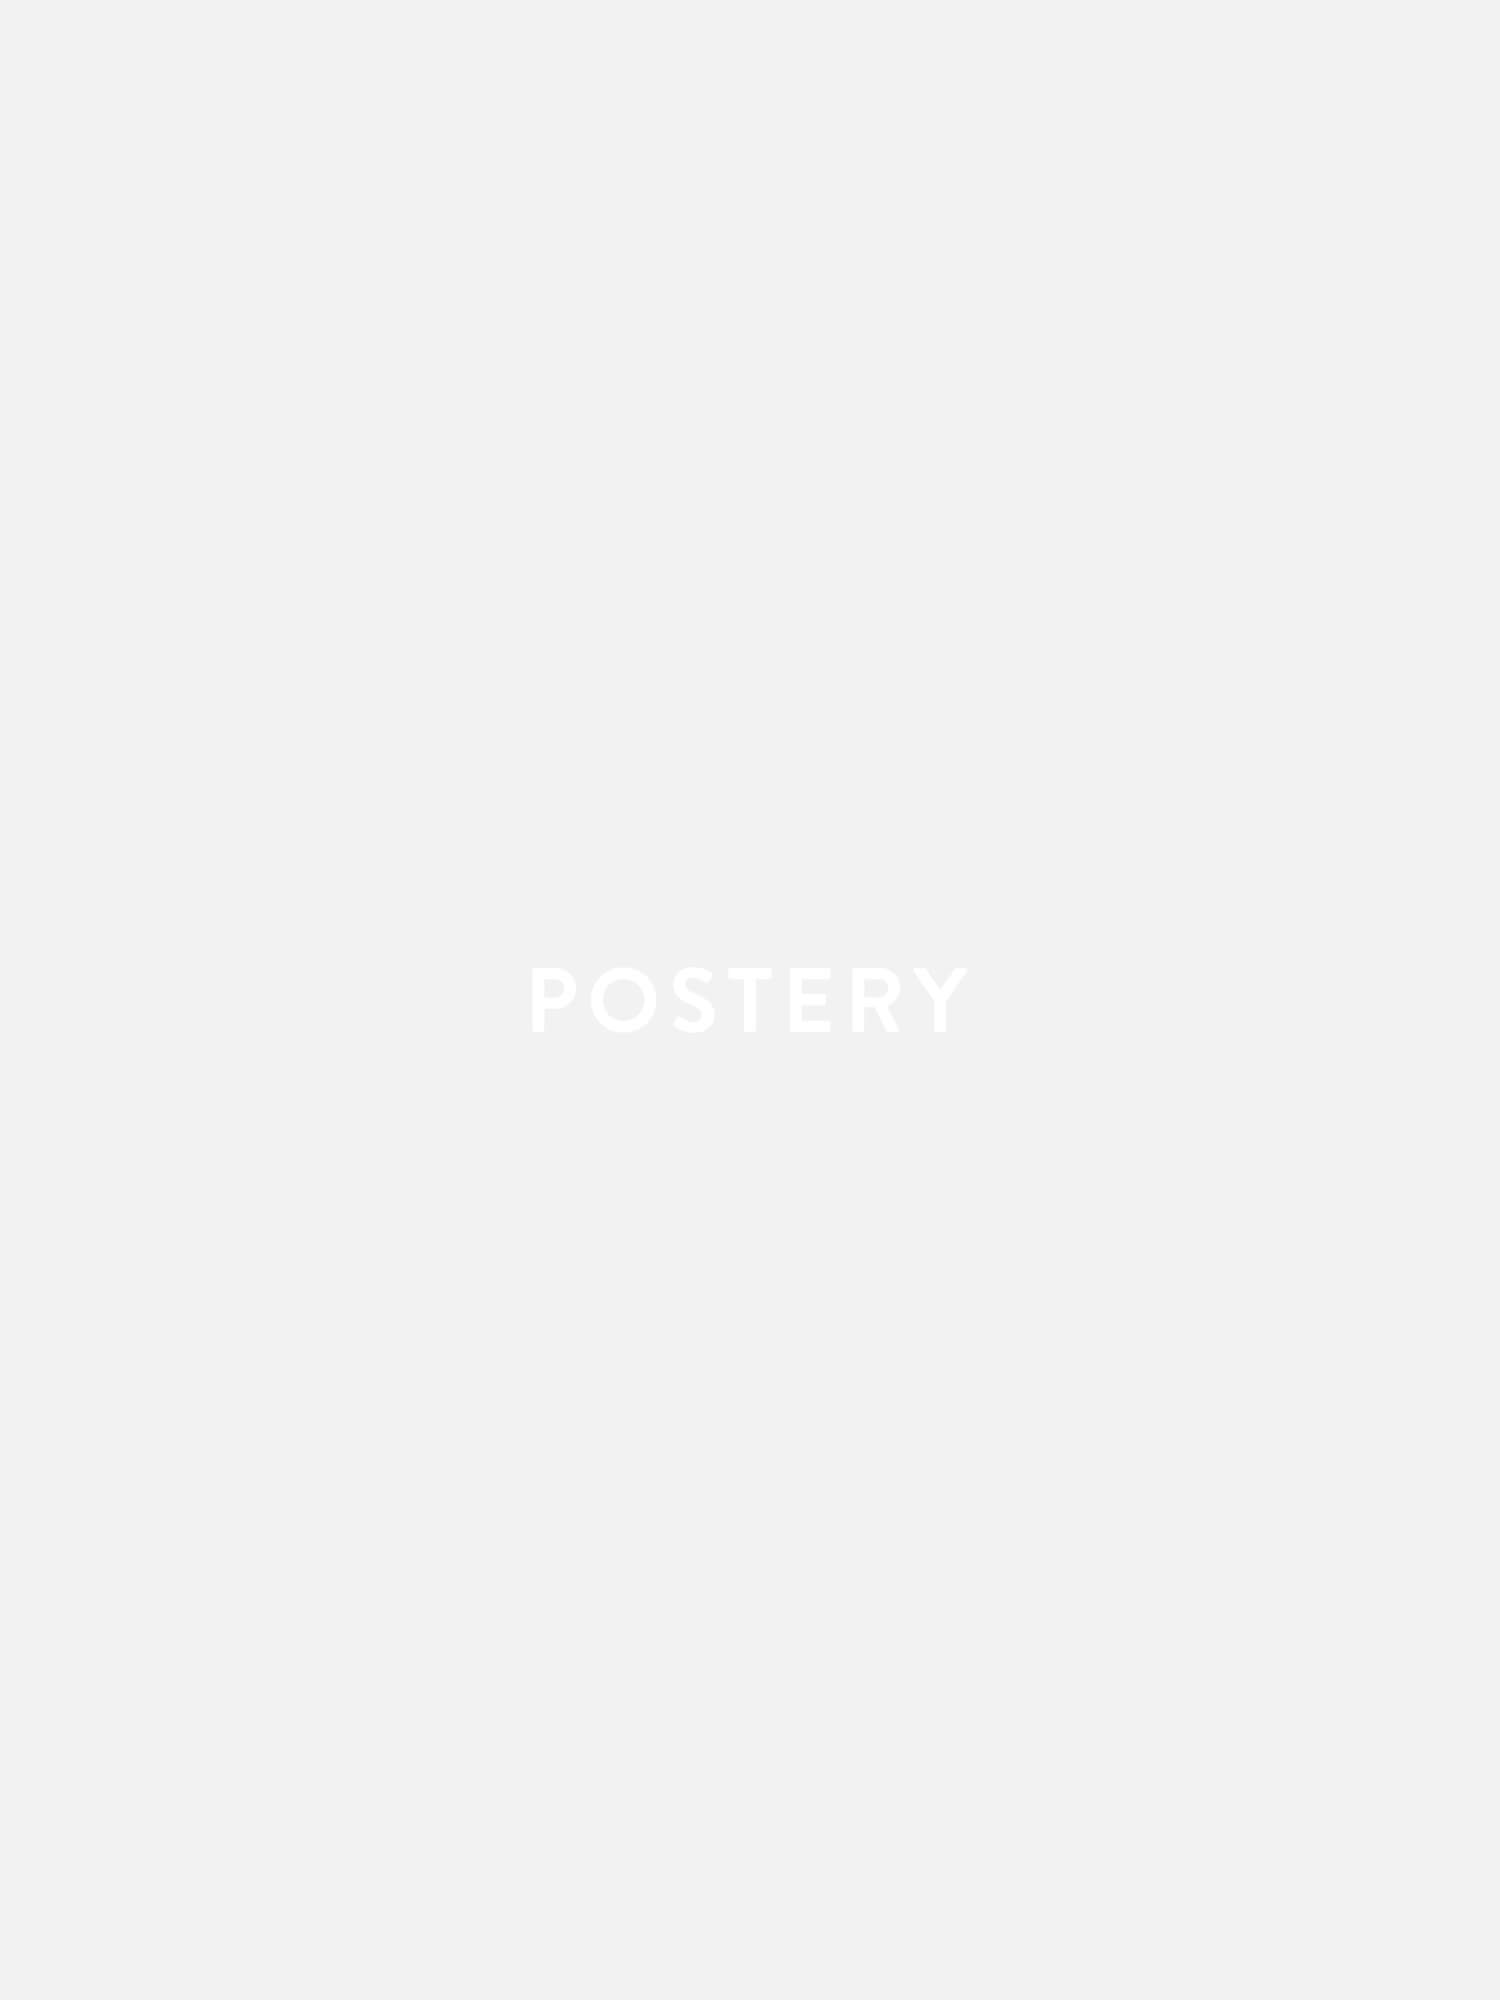 Window Dancer Poster